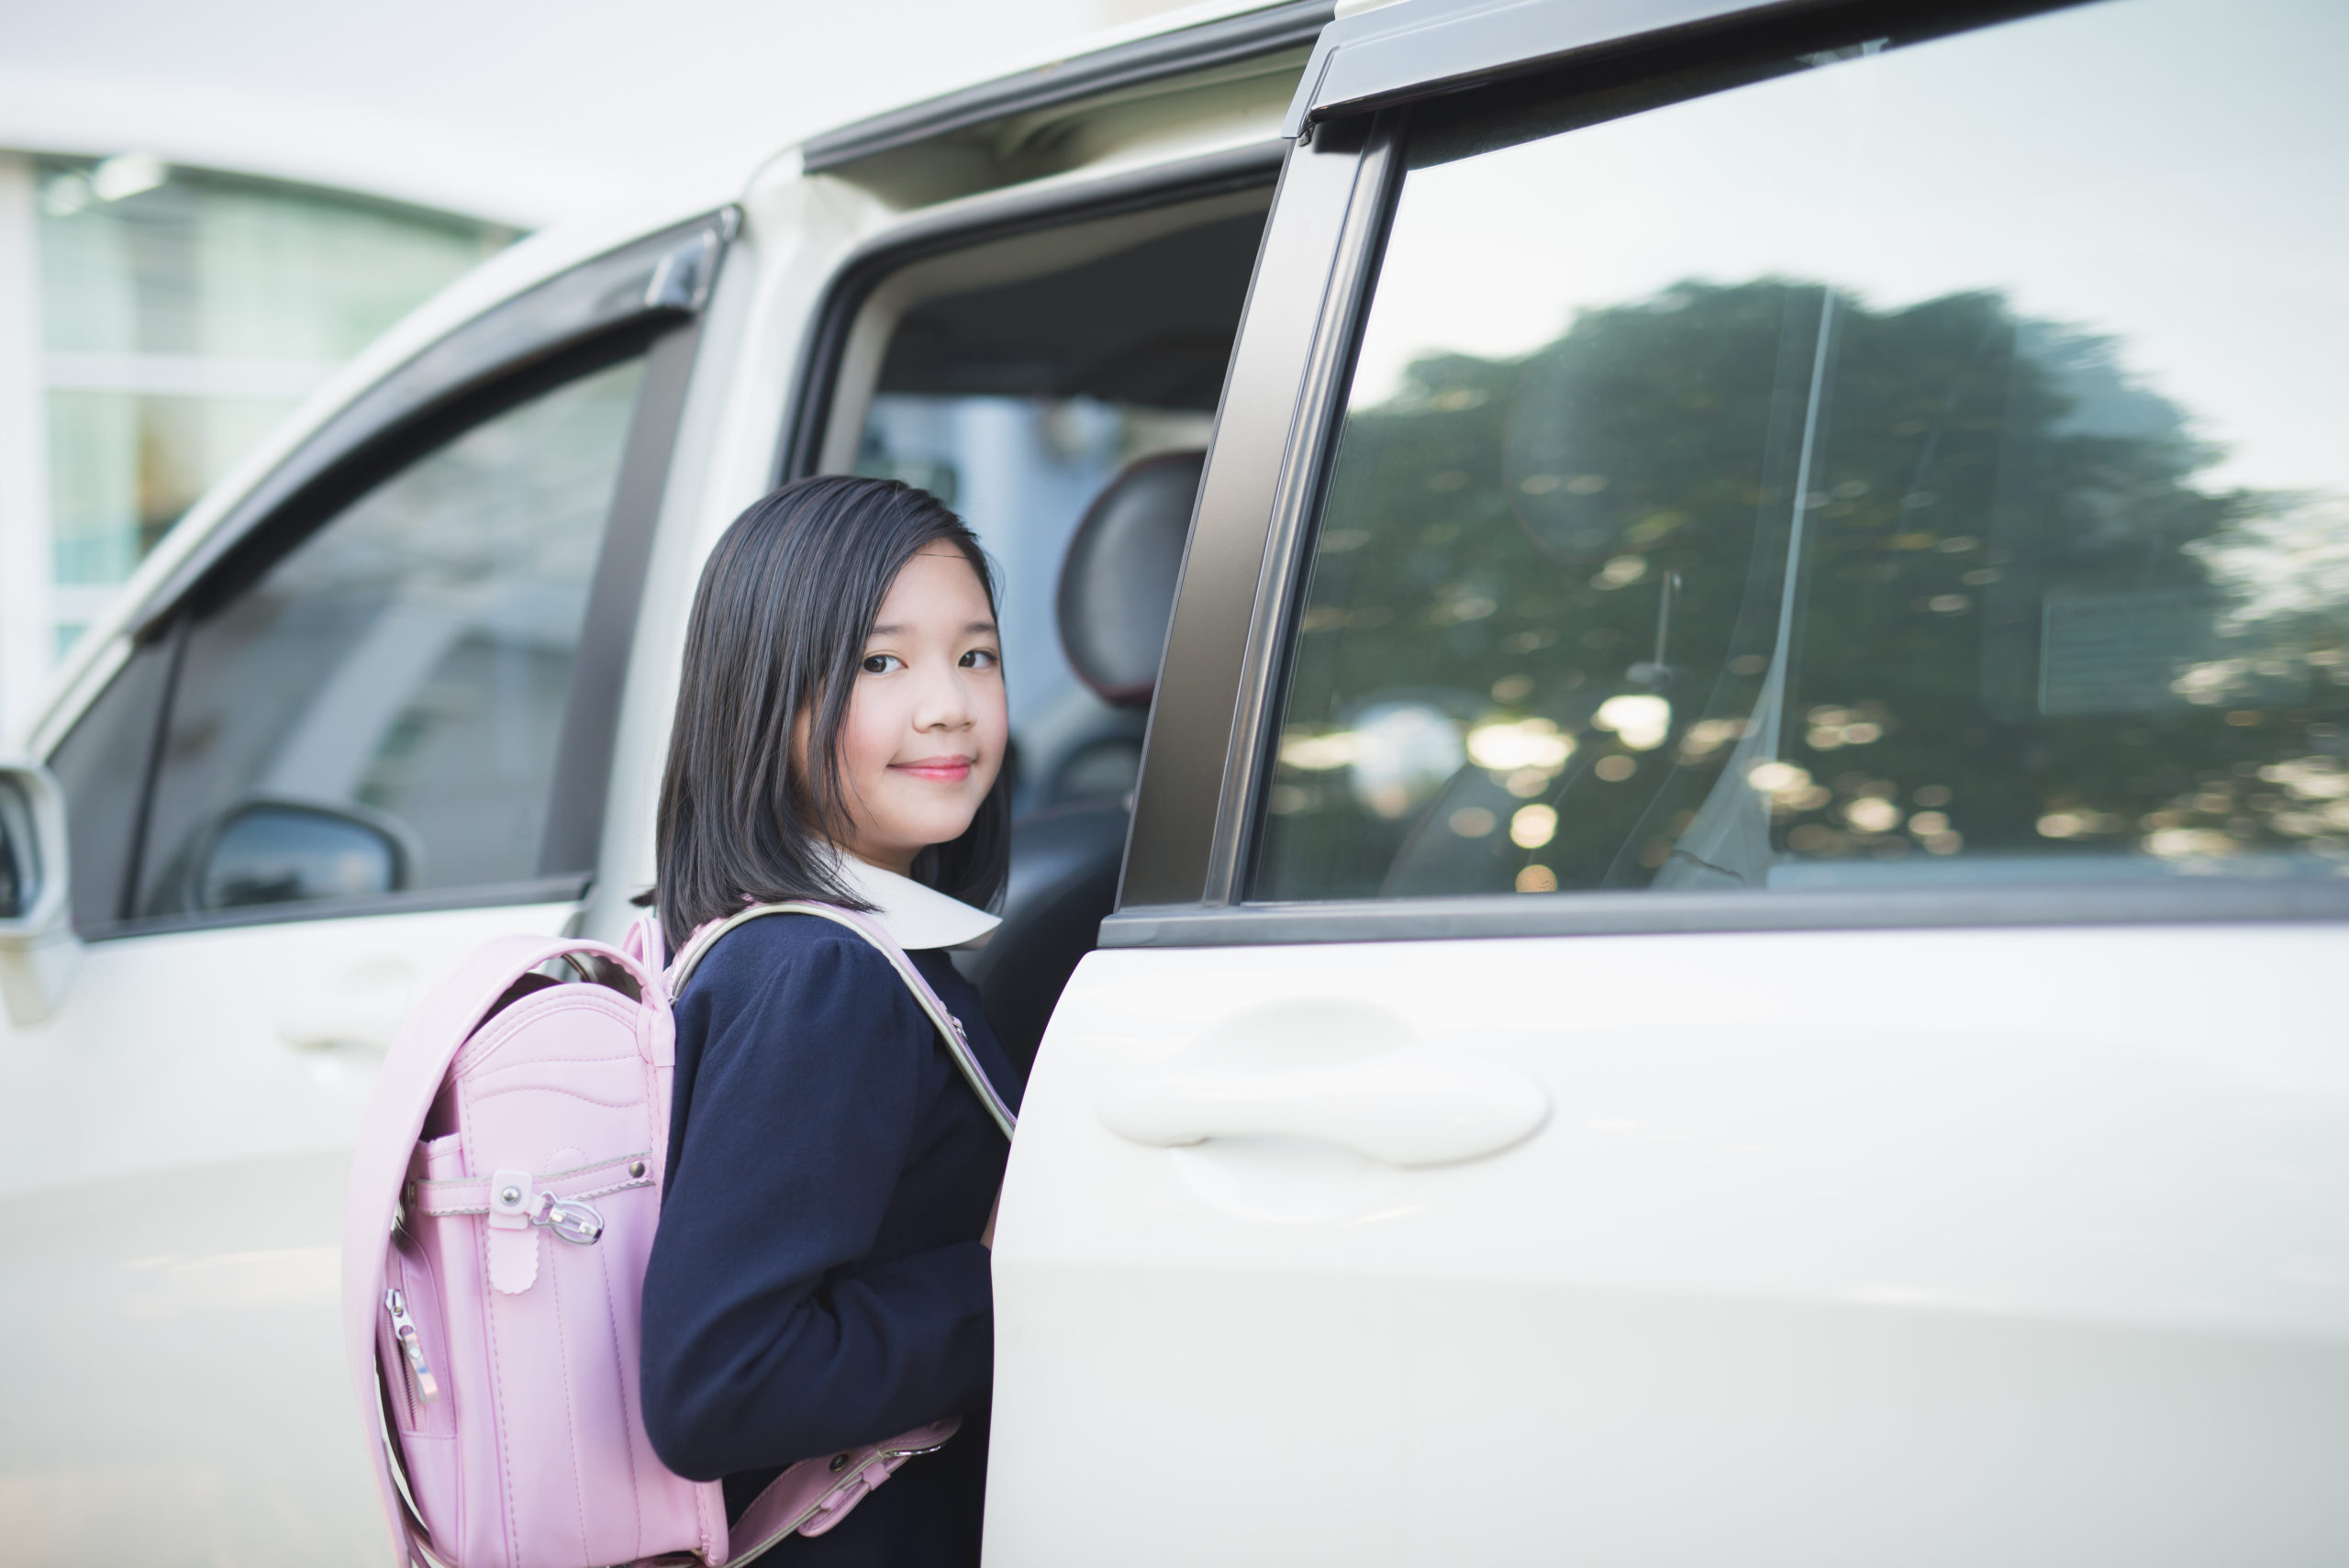 girl in student uniform going to school by car under sunlight